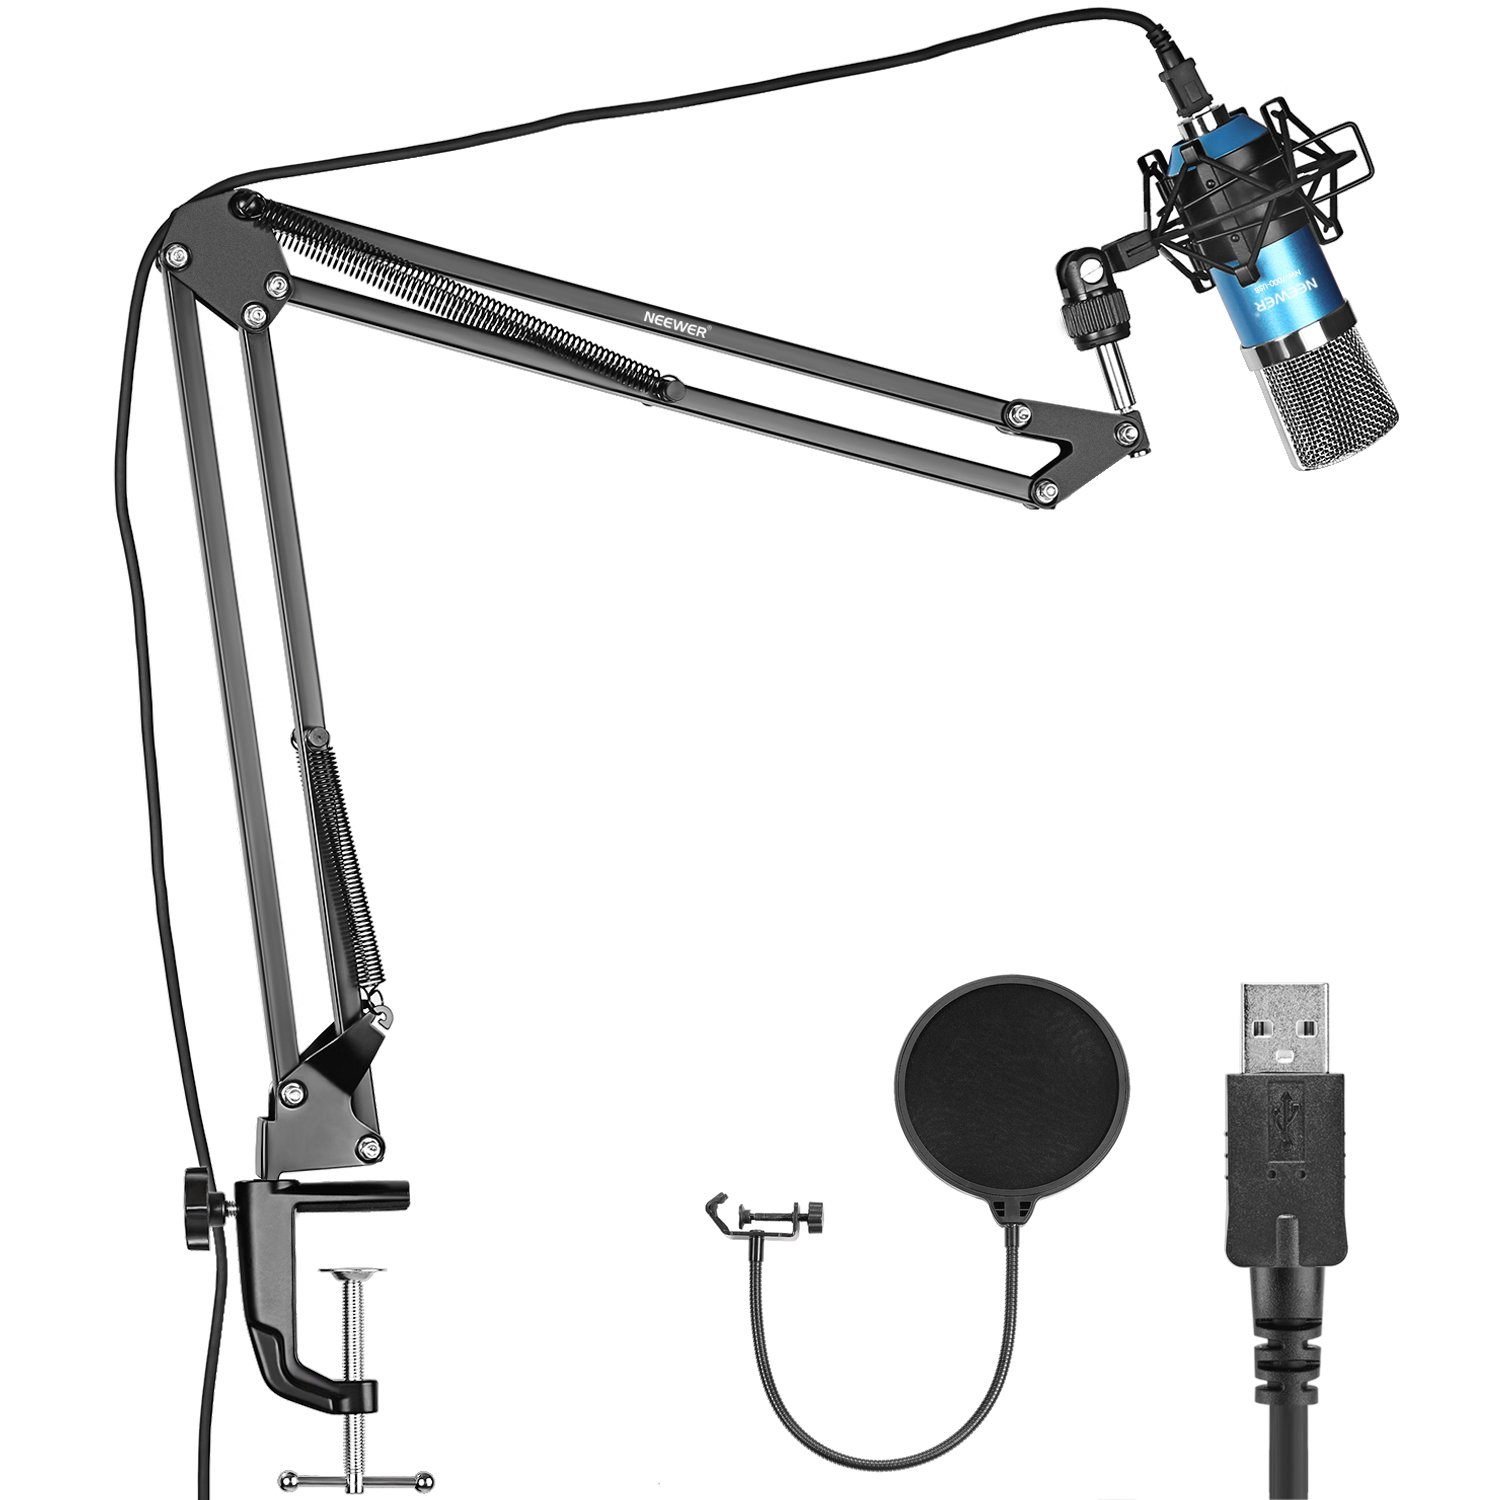 Neewer NW-7000 Professional Studio Condenser Microphone and Adjustable Suspension Scissor Arm Stand with Shock Mount, USB Cable and Table Mounting Clamp Kit for Broadcasting and Sound Recording (Blue) 40089659